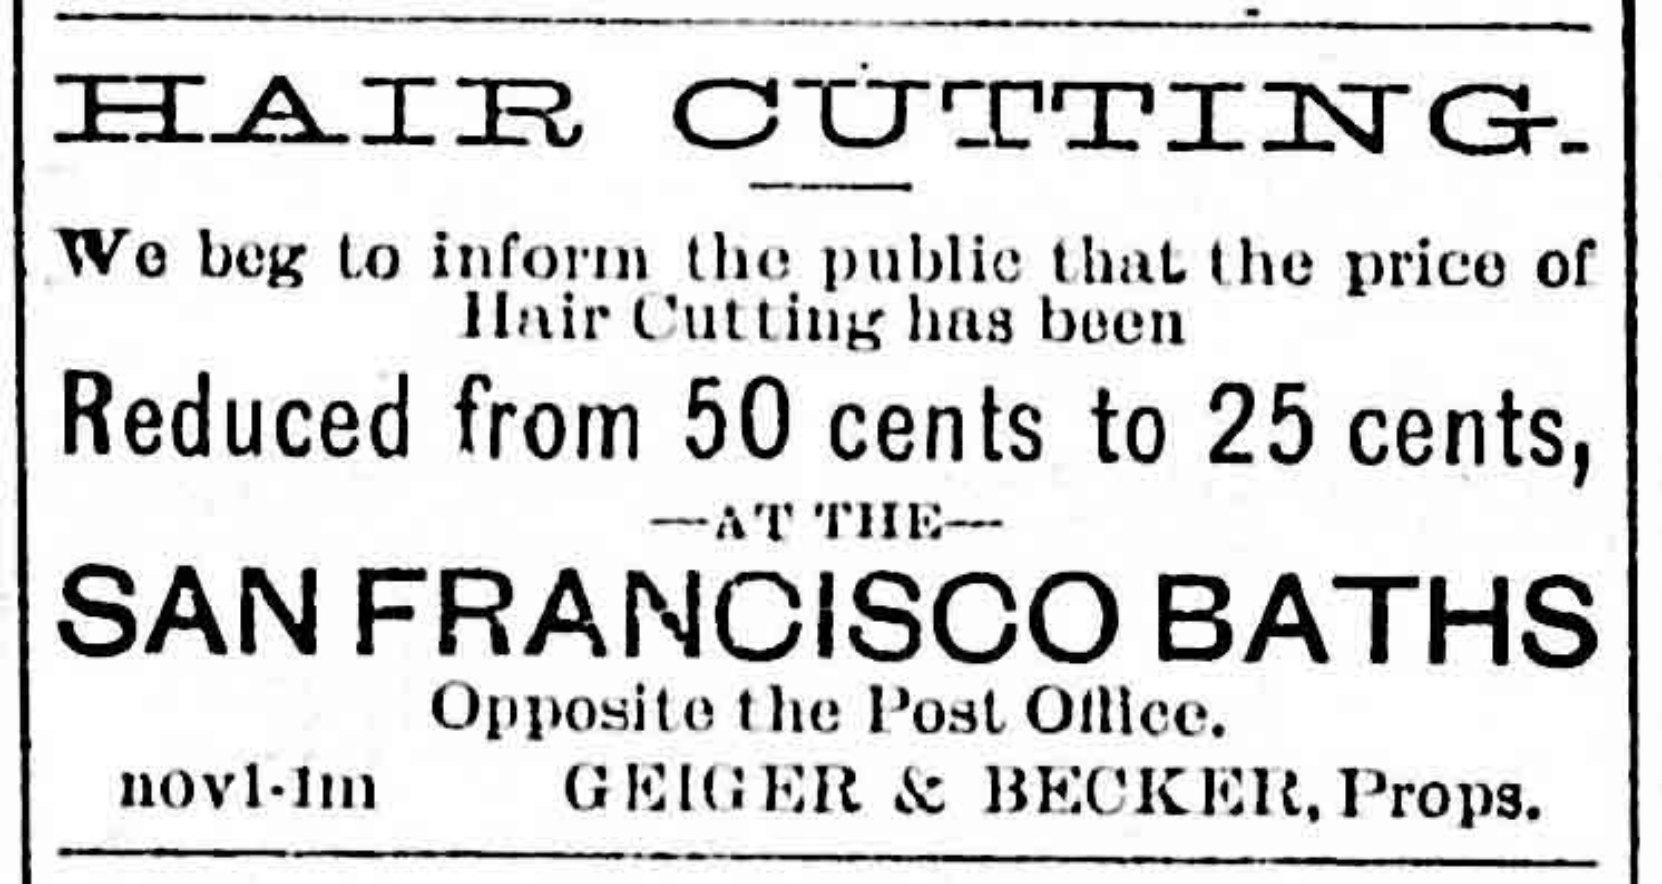 Advertisement for John F. Becker's San Francisco Baths, 1889